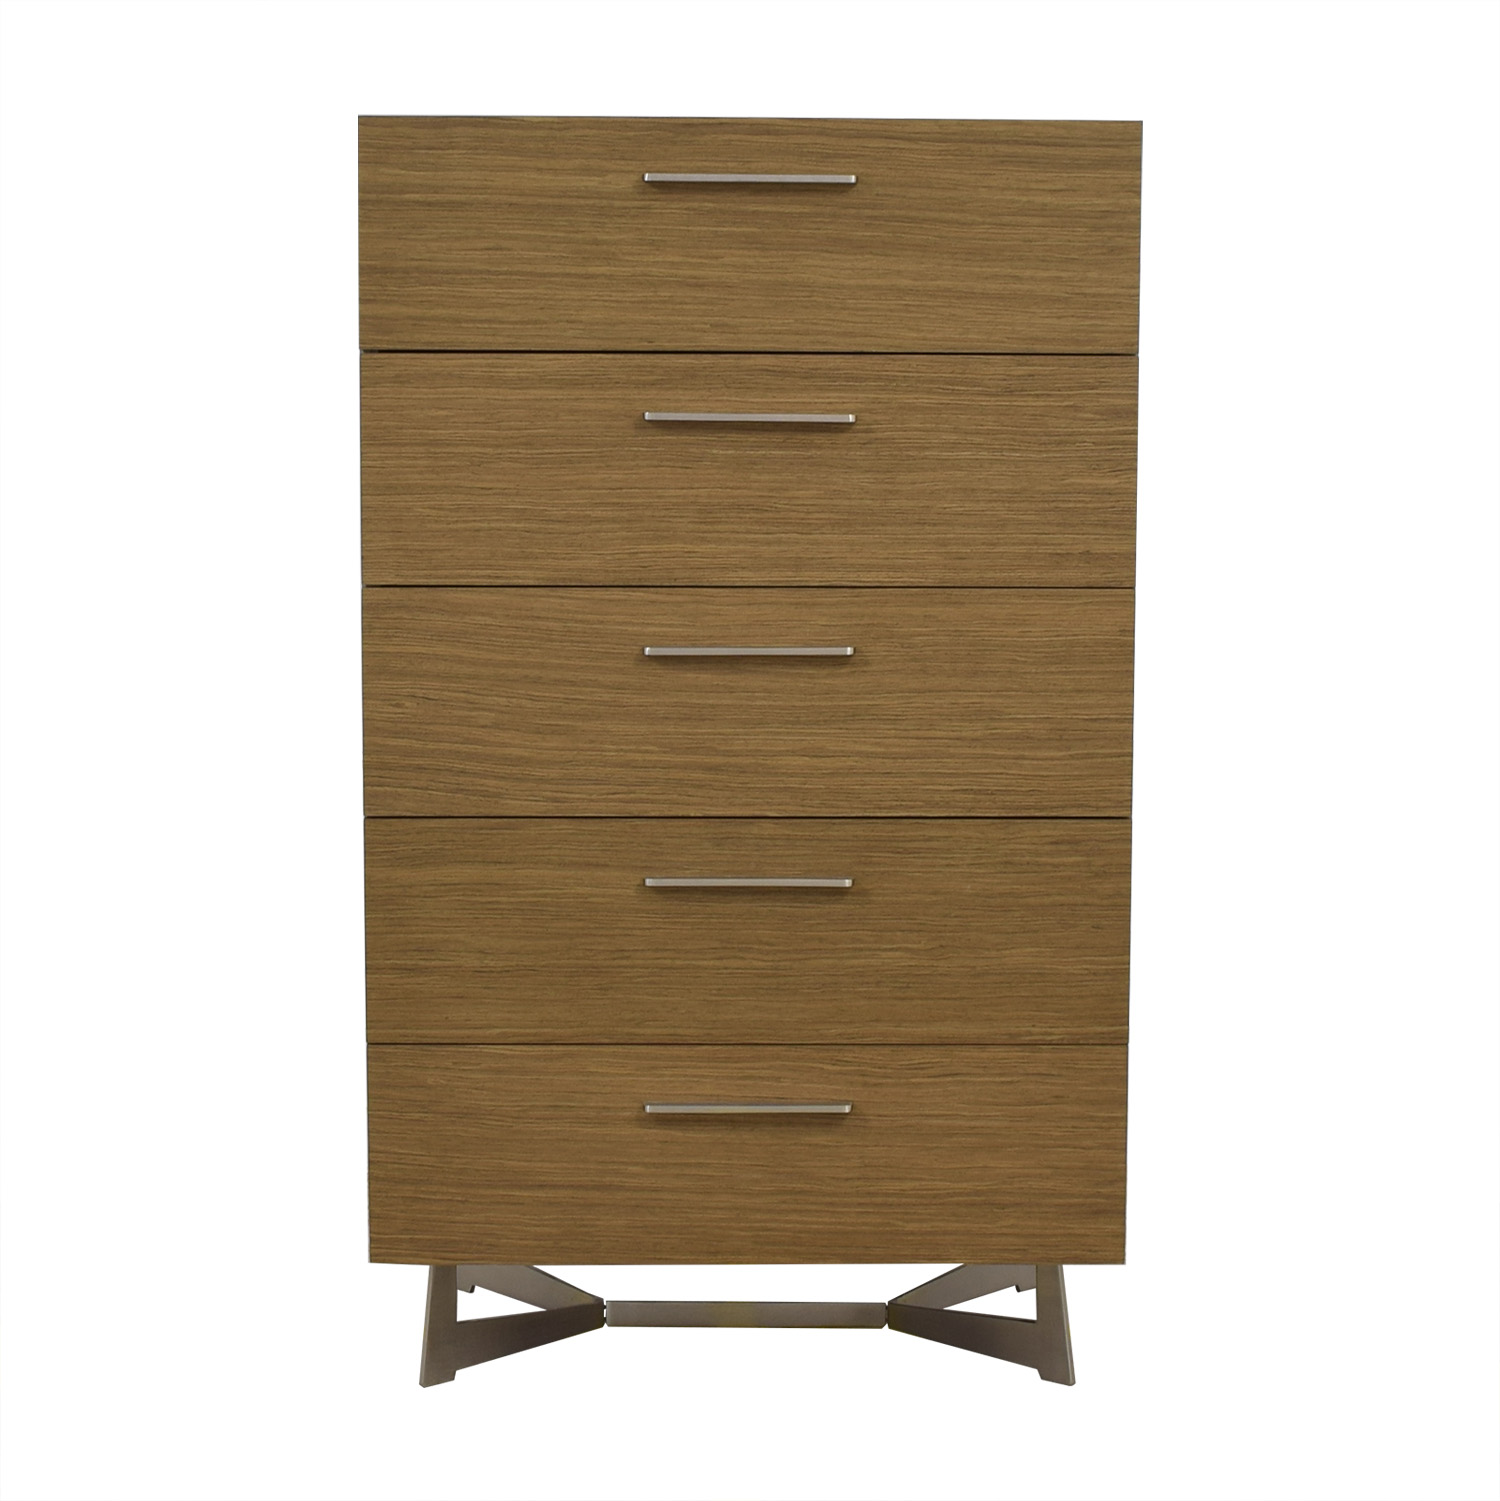 Modloft Broome High Chest Dresser / Dressers